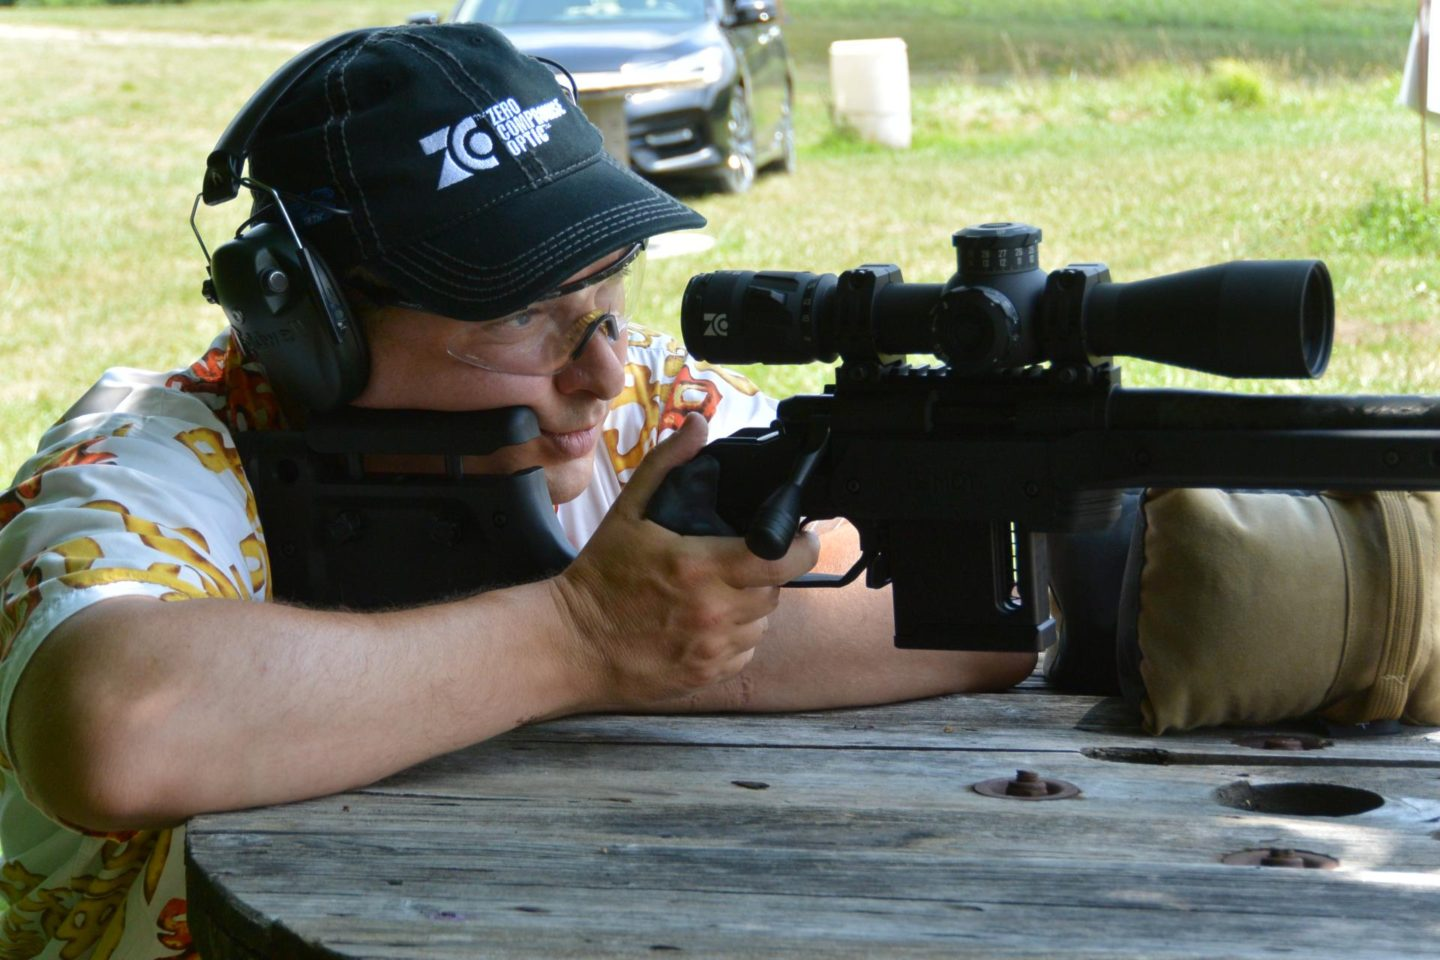 Shooting the two-stage TriggerTech Special 700 platform trigger